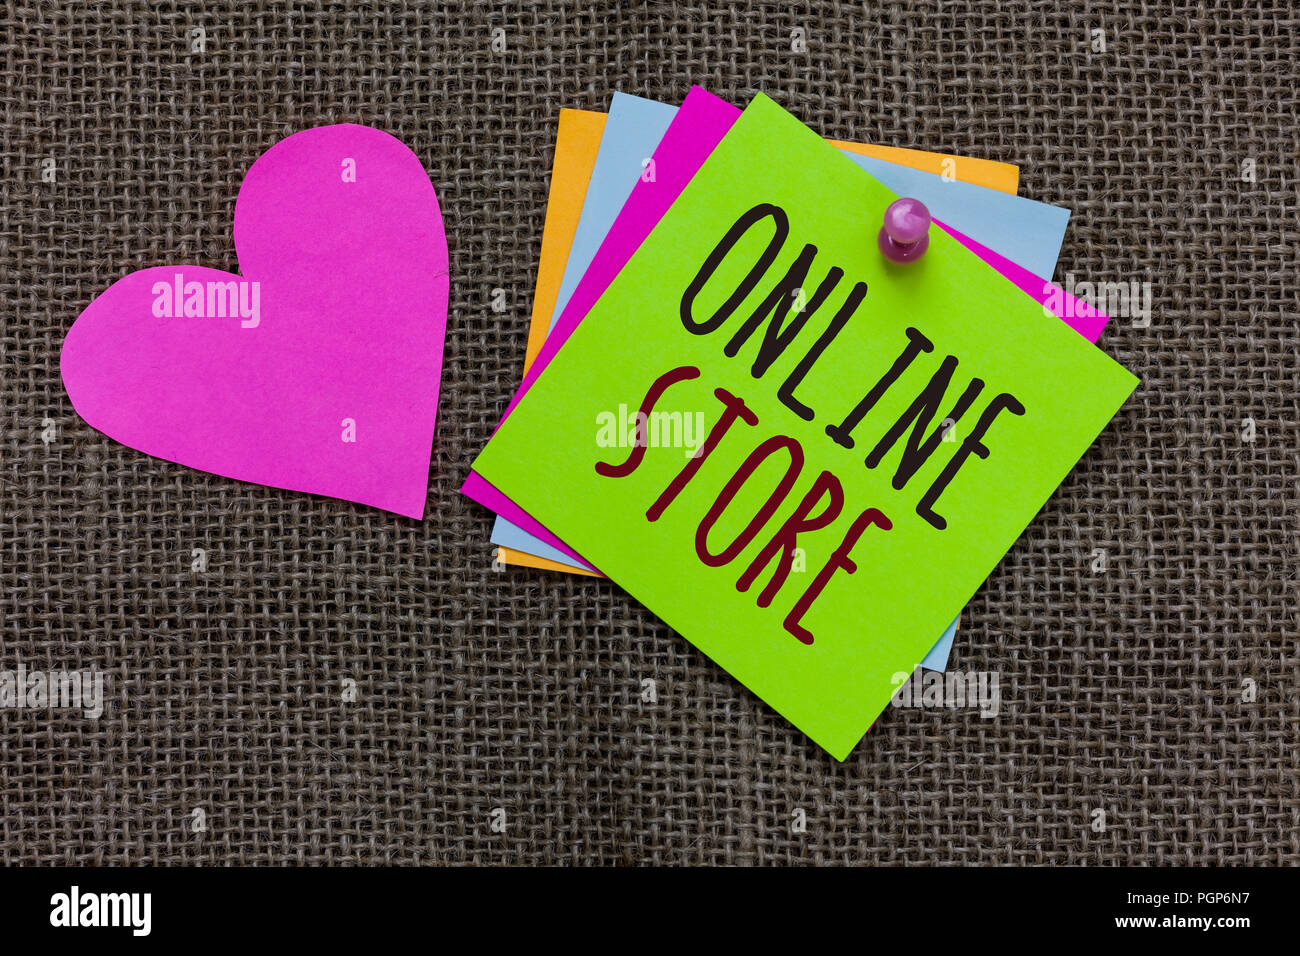 Handwriting Text Online Store Concept Meaning A Website That Offers Items For Sale And Accept Credit Cards Paper Notes Important Reminders Romantic L Stock Photo Alamy